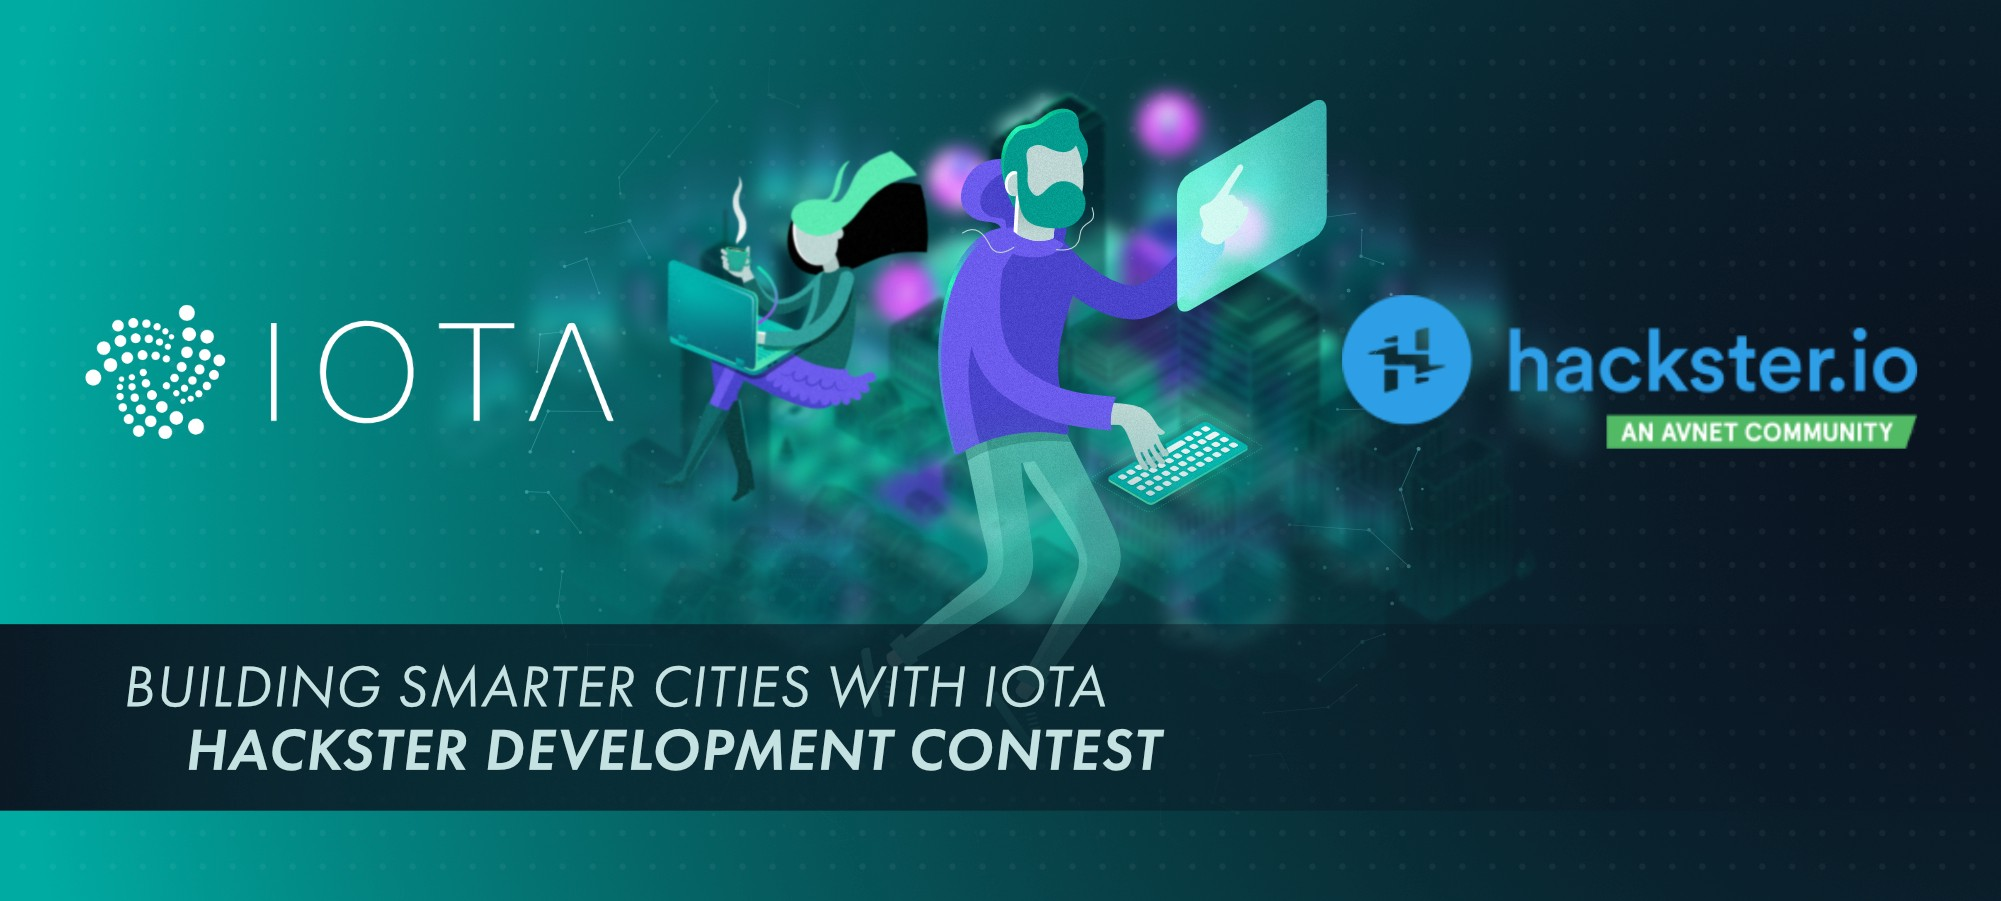 IOTA Announces Smart City Development Competition with Groupe